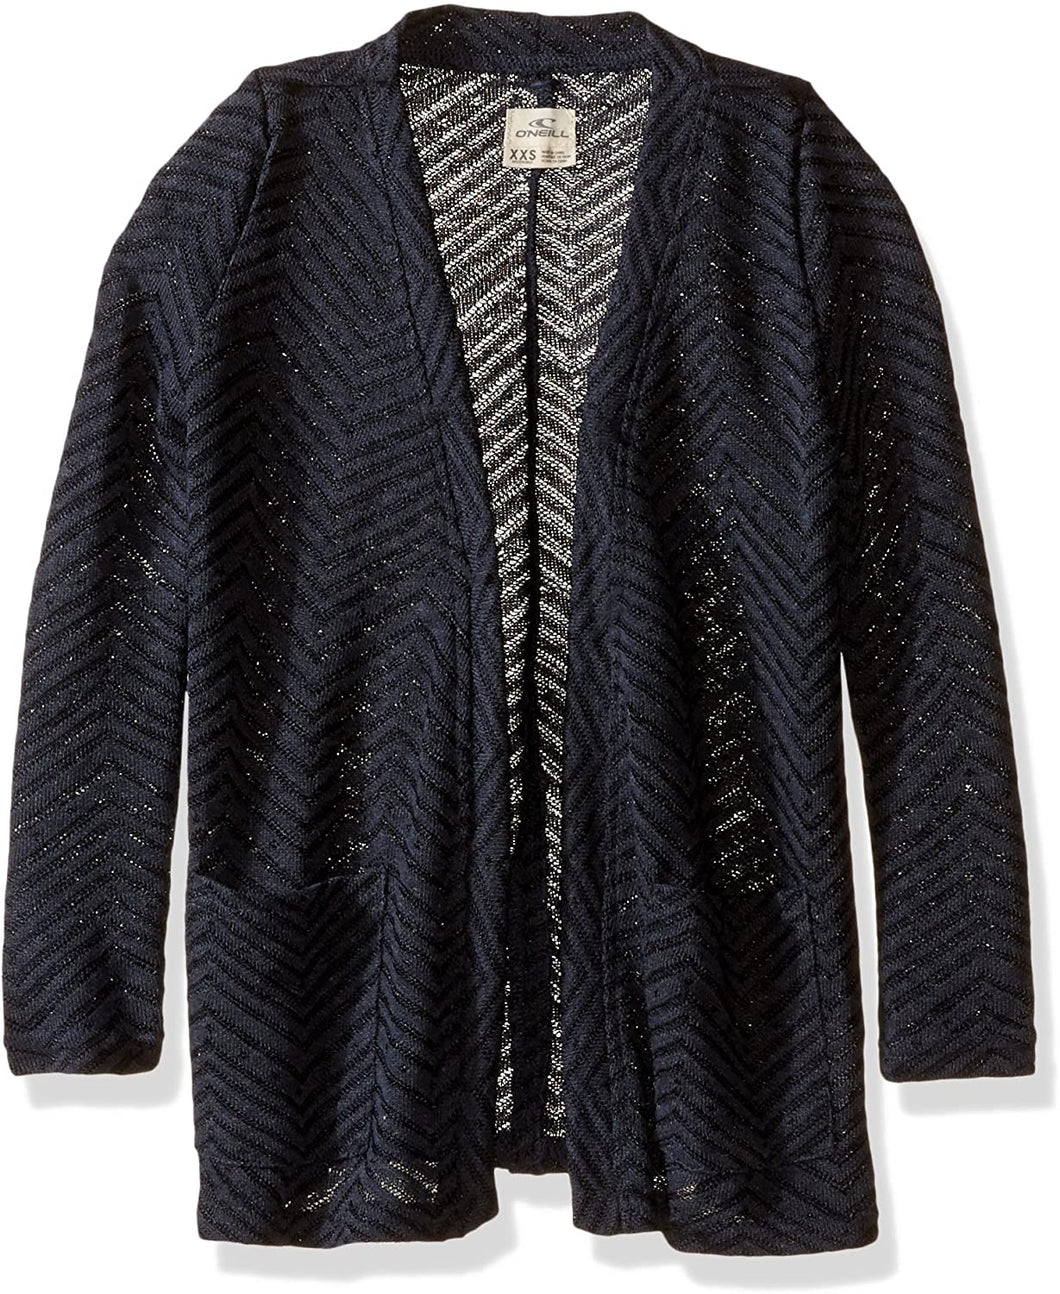 O'NEILL Girls Little Montauk Cardigan, (DKI) Dark Indigo, Girls Size Small (7)